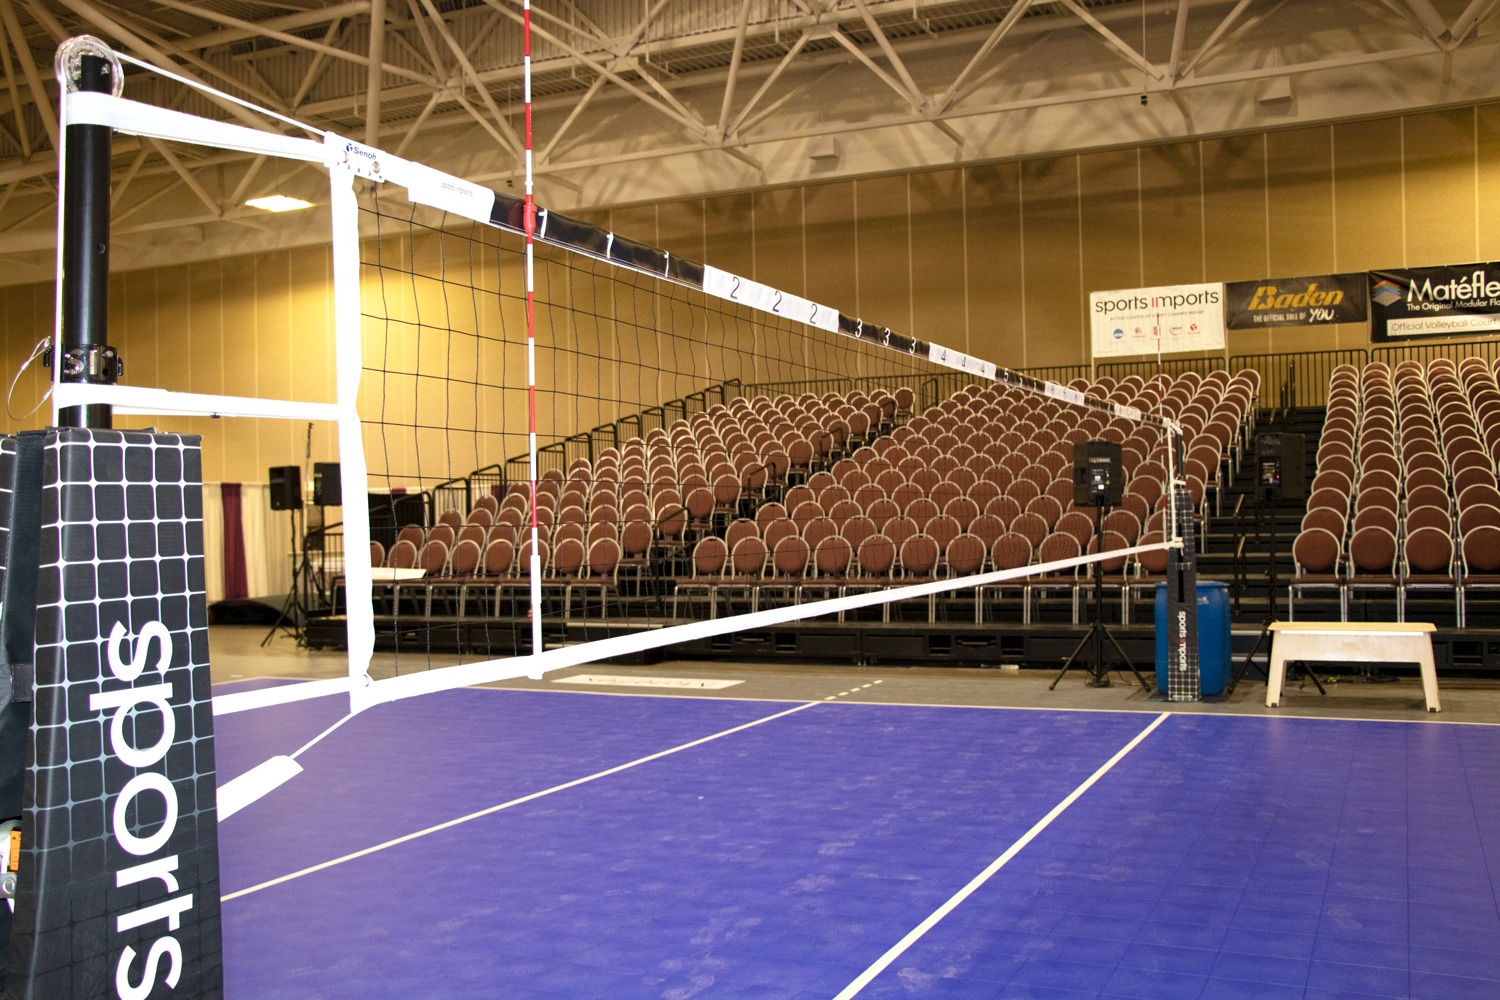 volleyball net training equipment from Sports Imports